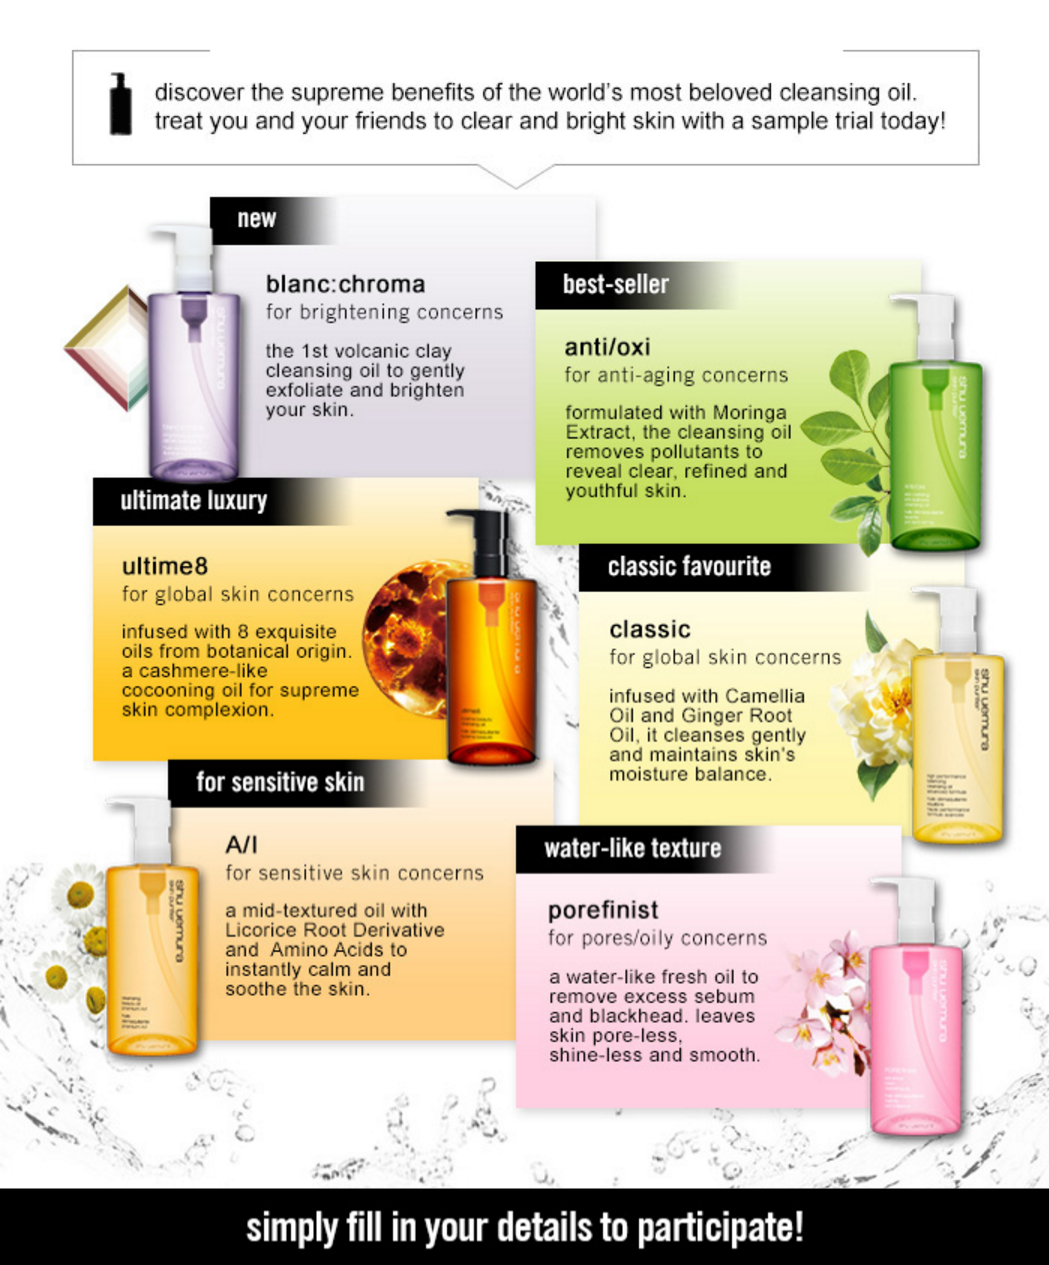 shu uemura Malaysia is giving away FREE Cleansing Oil sample trial 2015